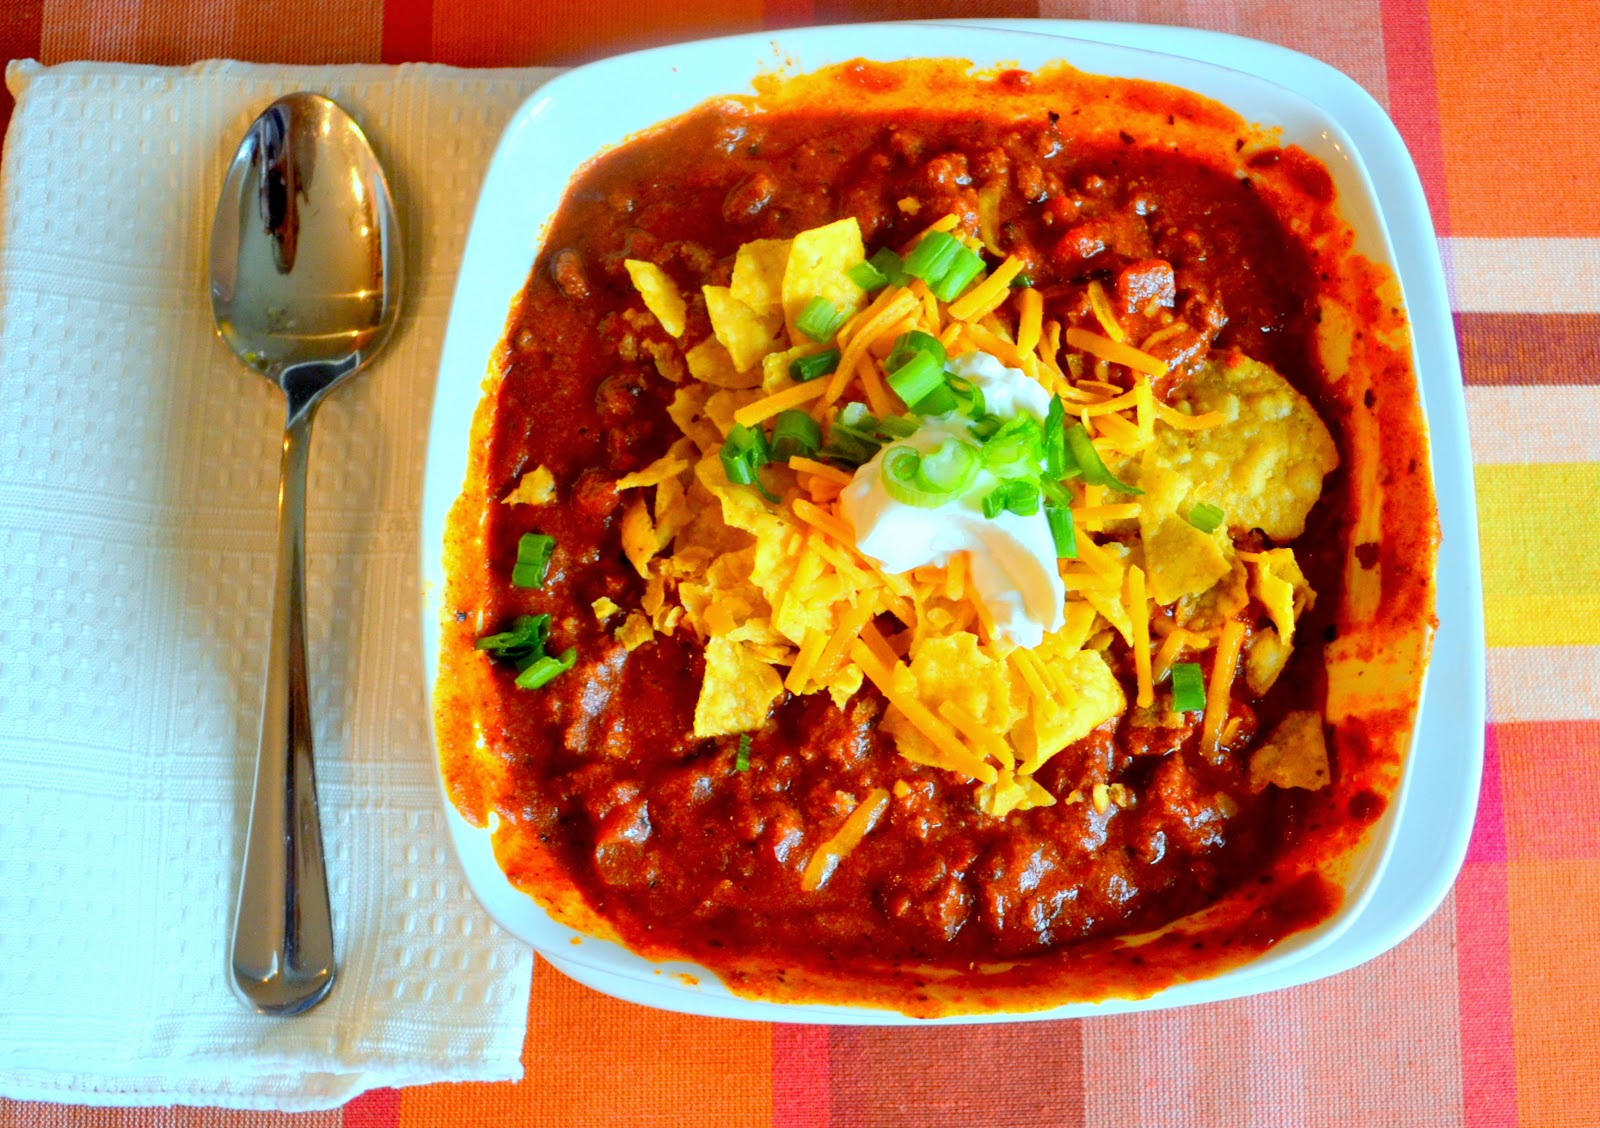 ... The Ultimate Tex-Mex Food: Cheese Enchiladas with Chili Con Carne